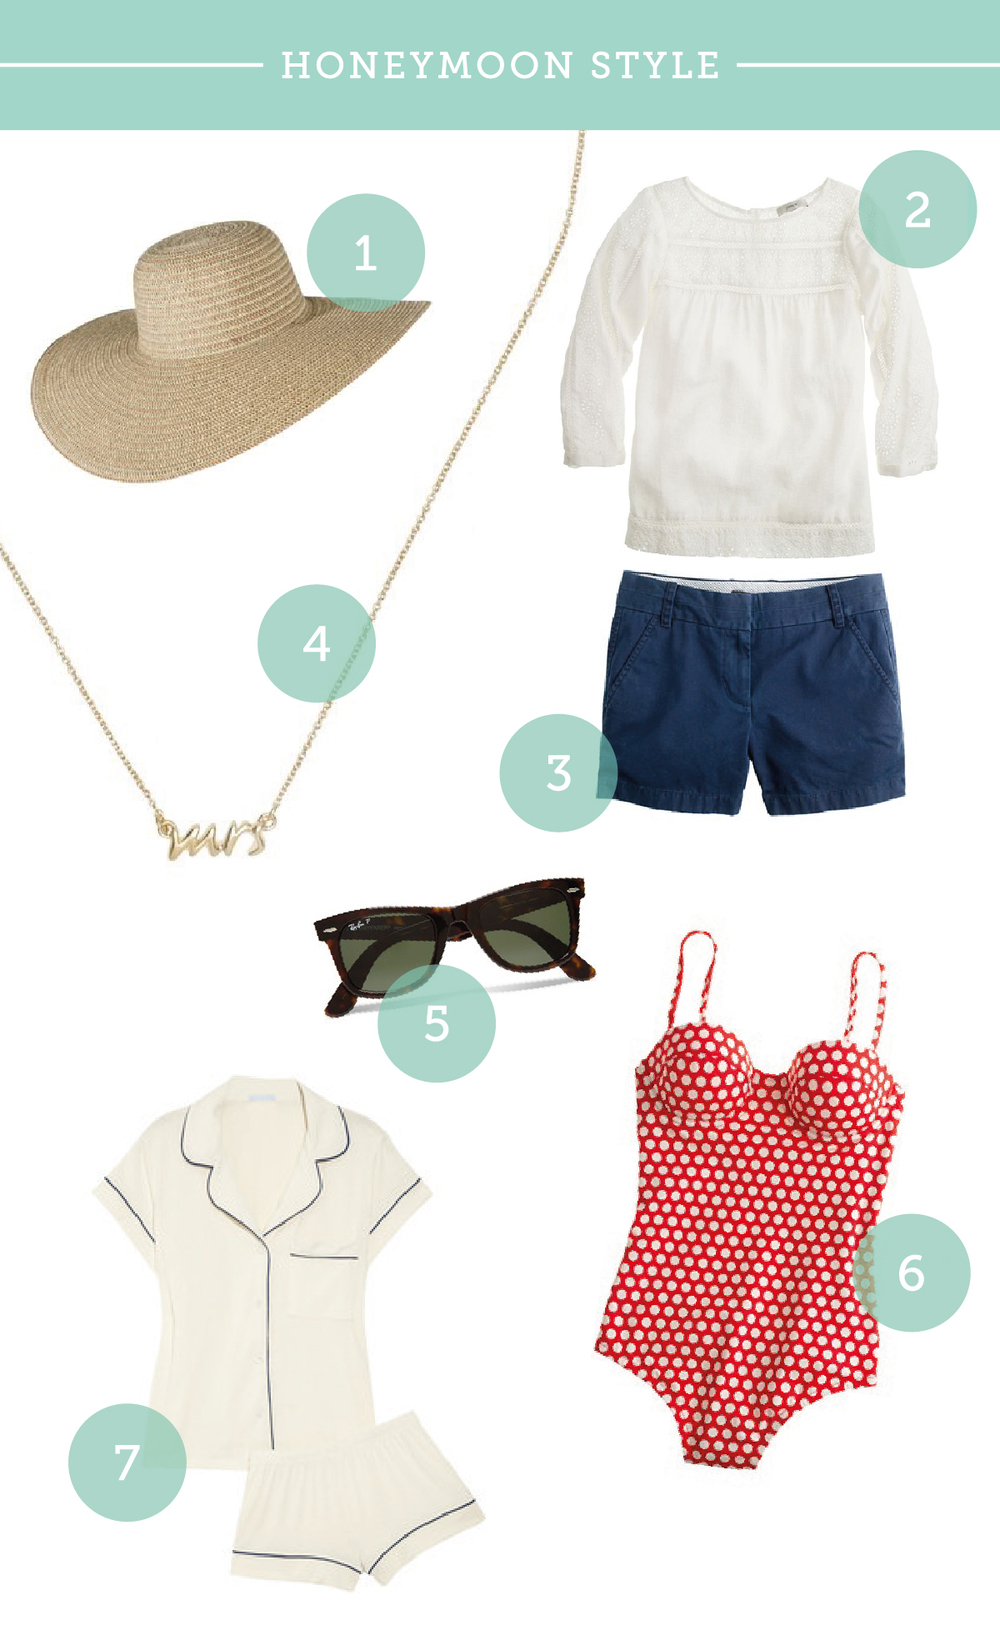 1. Hat from Target, 2. Linen shirt from J. Crew (no longer available), 3. Shorts from J. Crew, 4. Necklace from Kate Spade, 5. Sunglasses from Ray Ban, 6. Swimsuit from J. Crew (similar), 7. PJ set from Eberjey